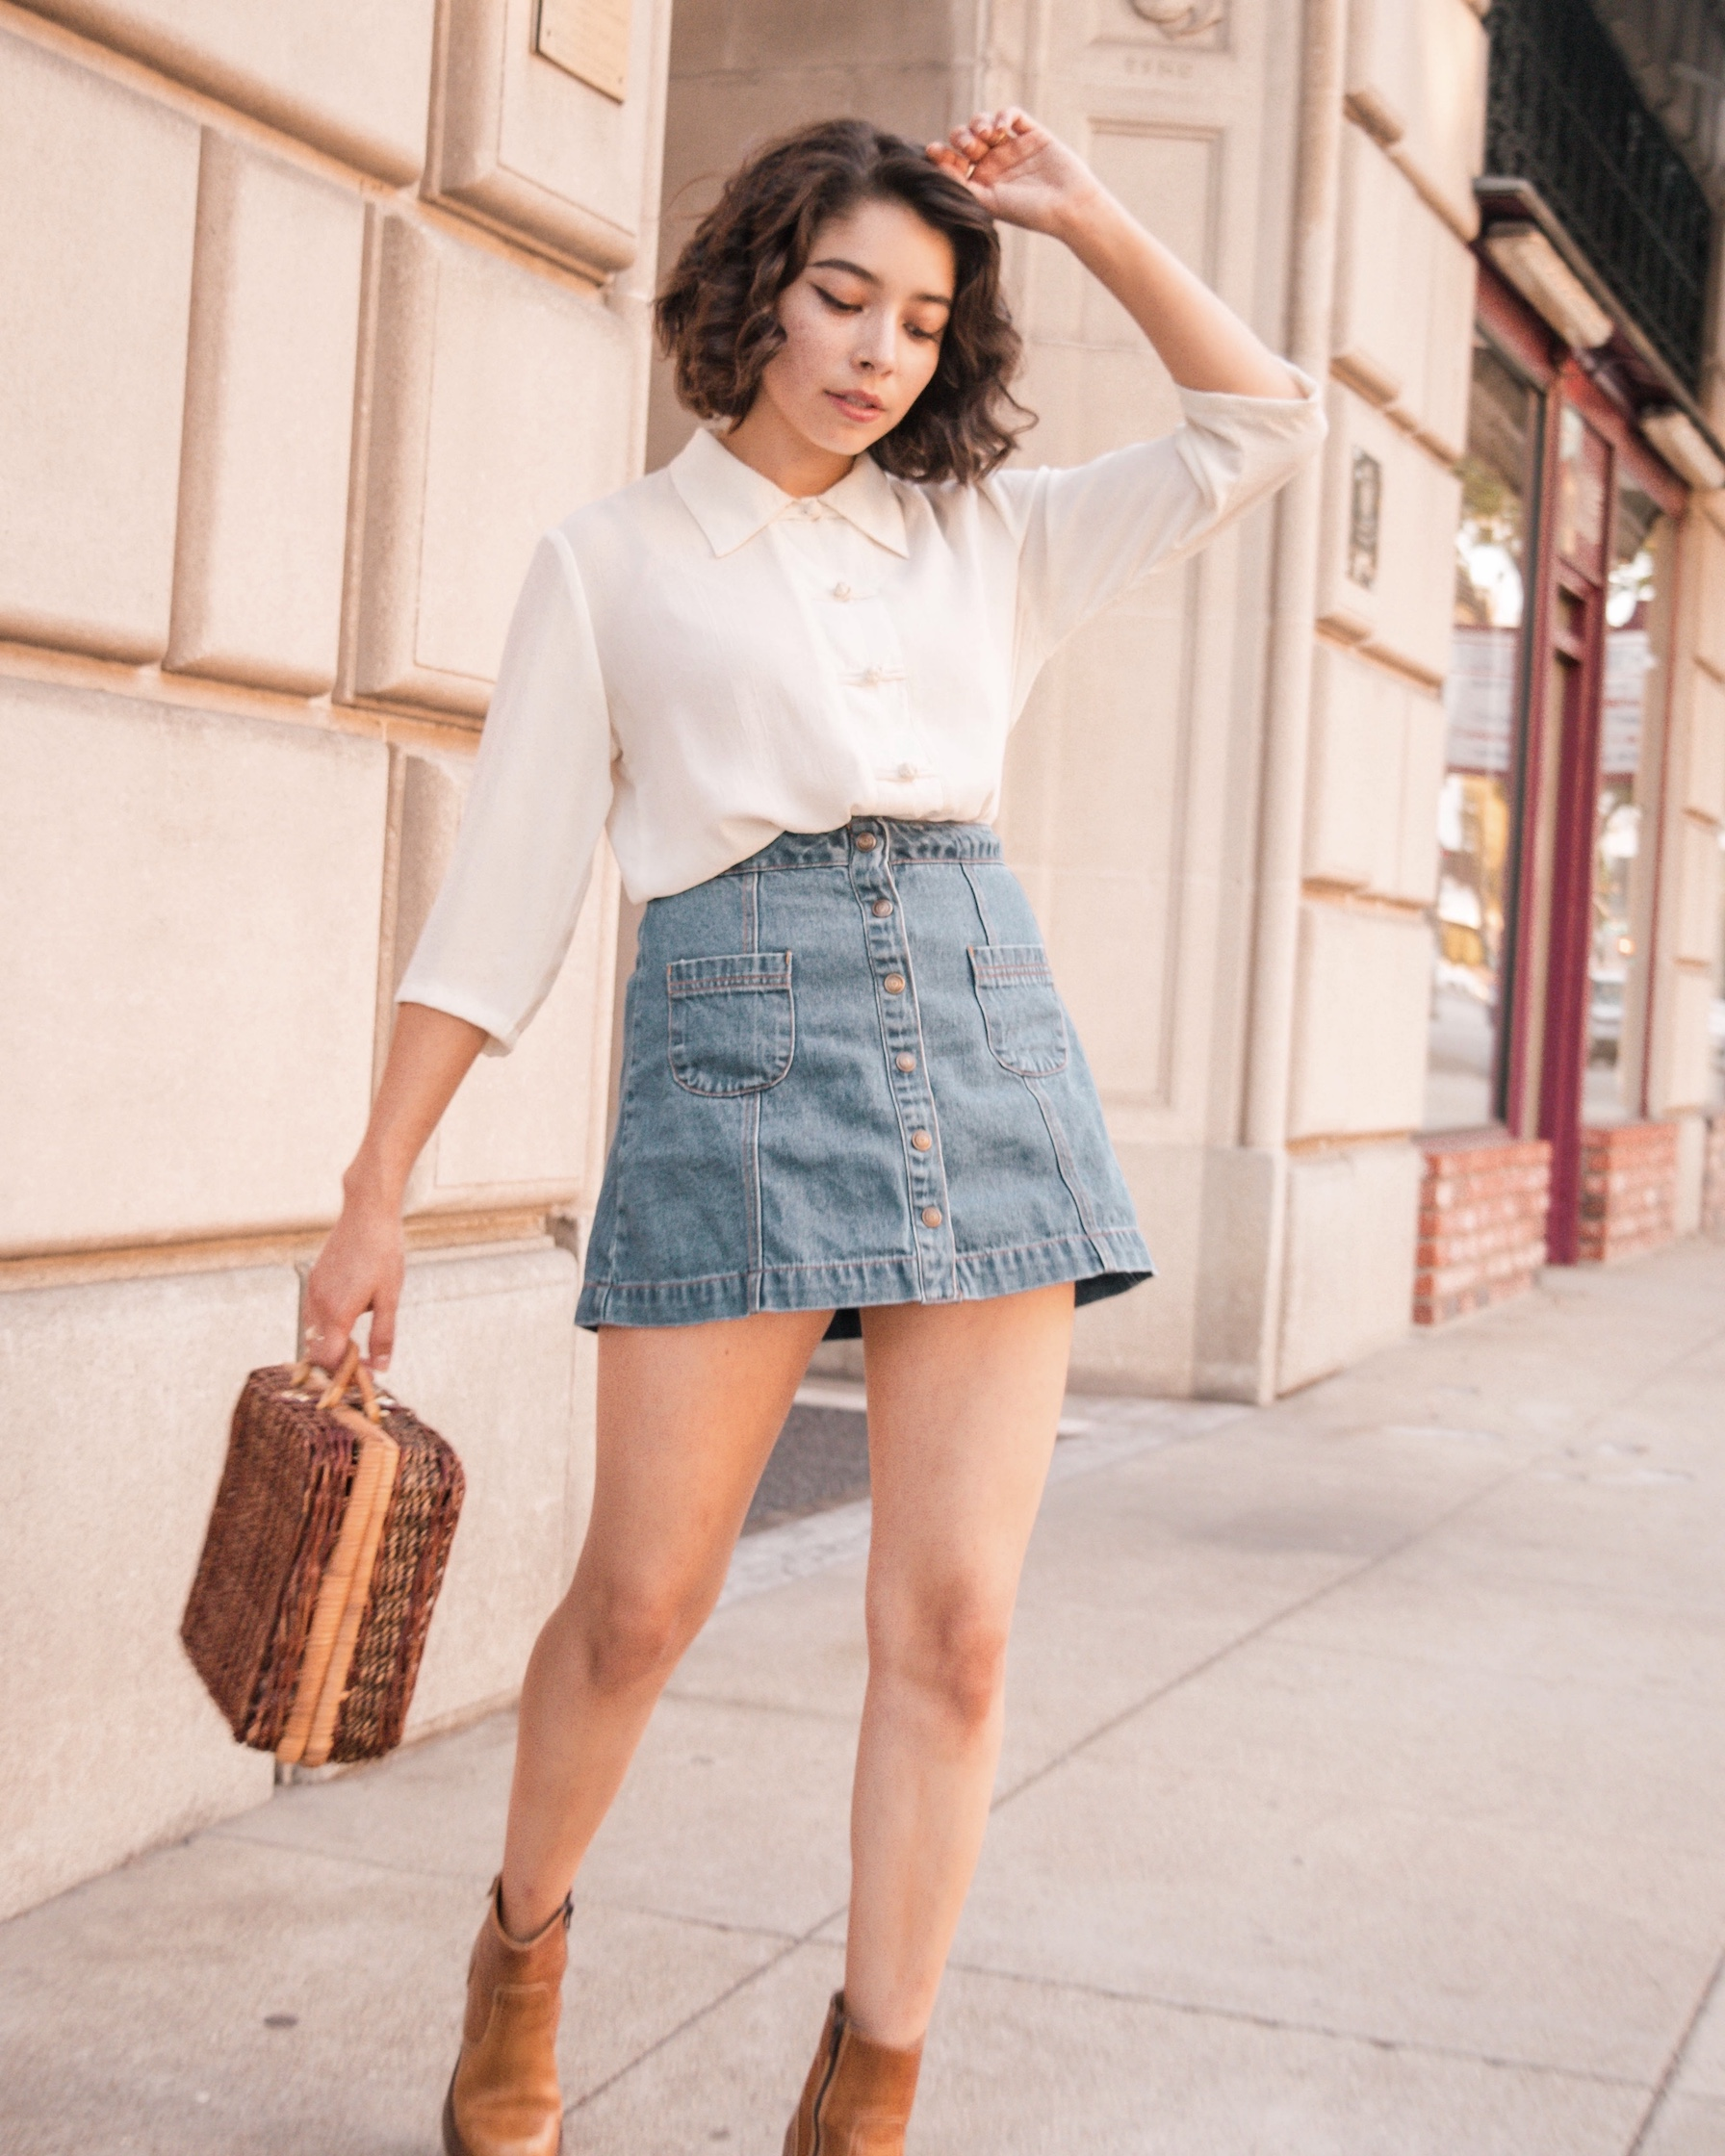 Wicker handbag with minimalist outfit // A Week Of Self-Expressive Outfits With Aja Duran From Aja With Love on The Good Trade